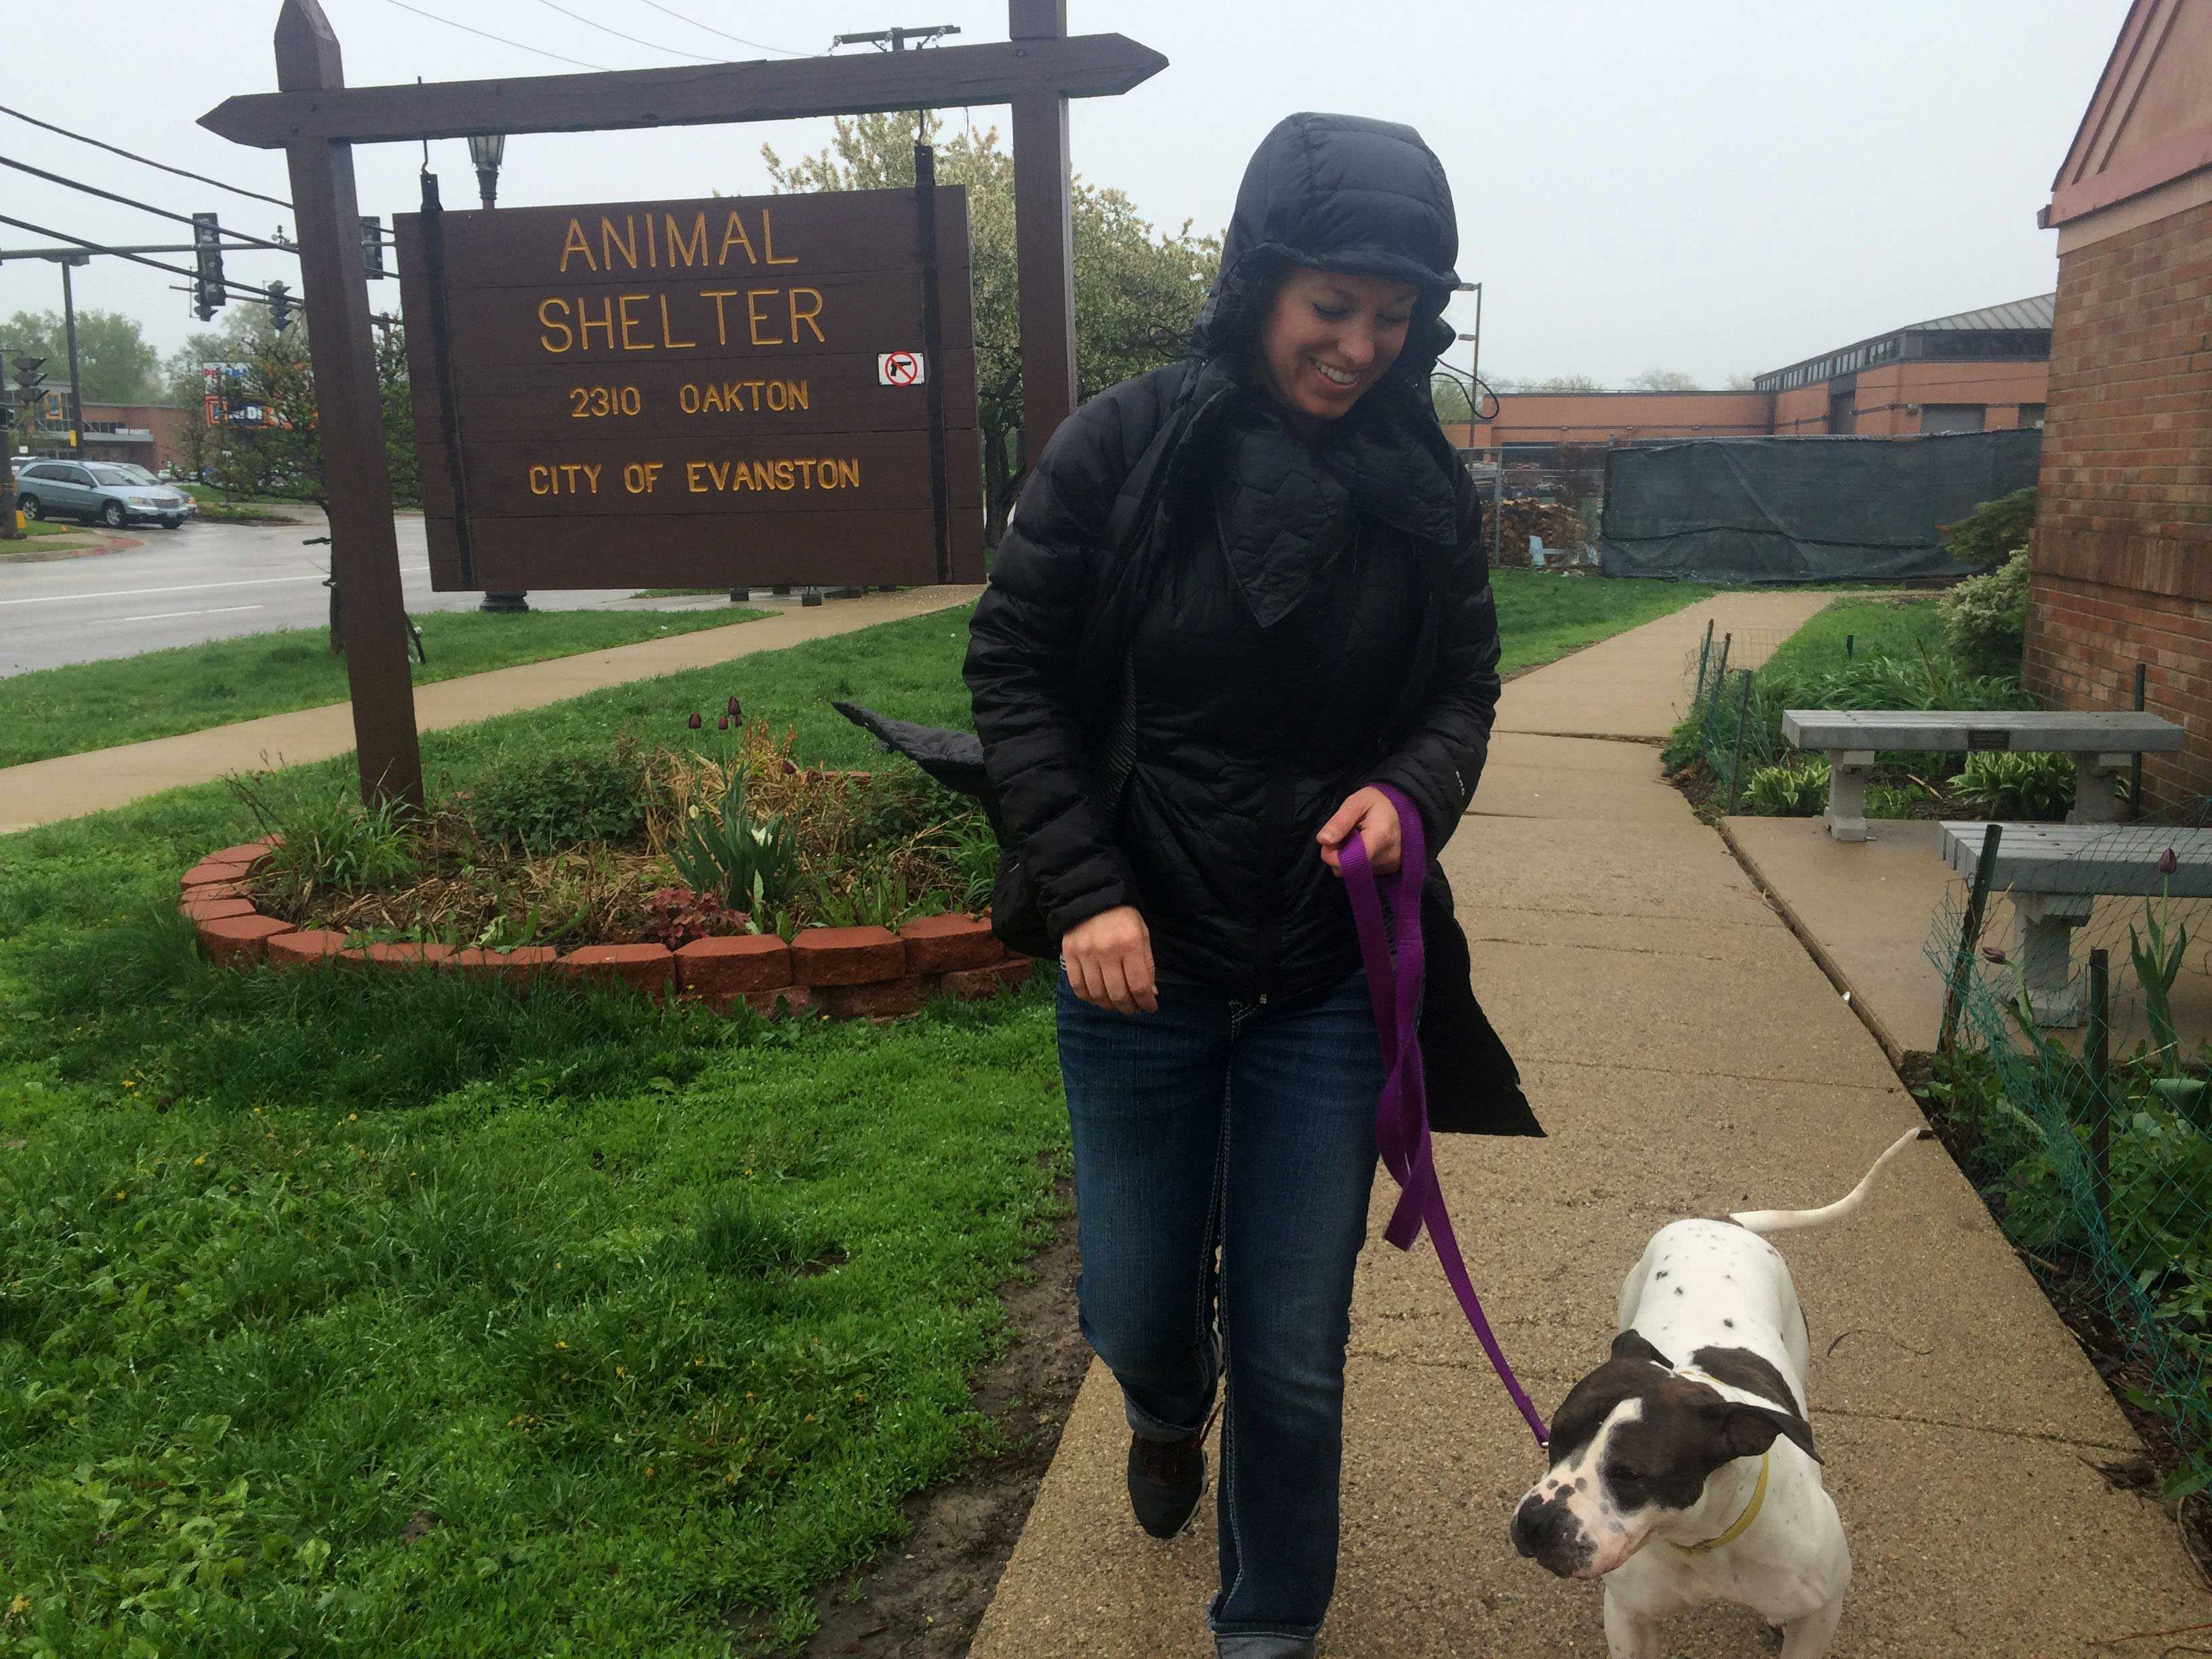 City Council unanimously approved the nonprofit Evanston Animal Shelter Association to take over the shelter June 1. The city has operated the shelter for the past year.